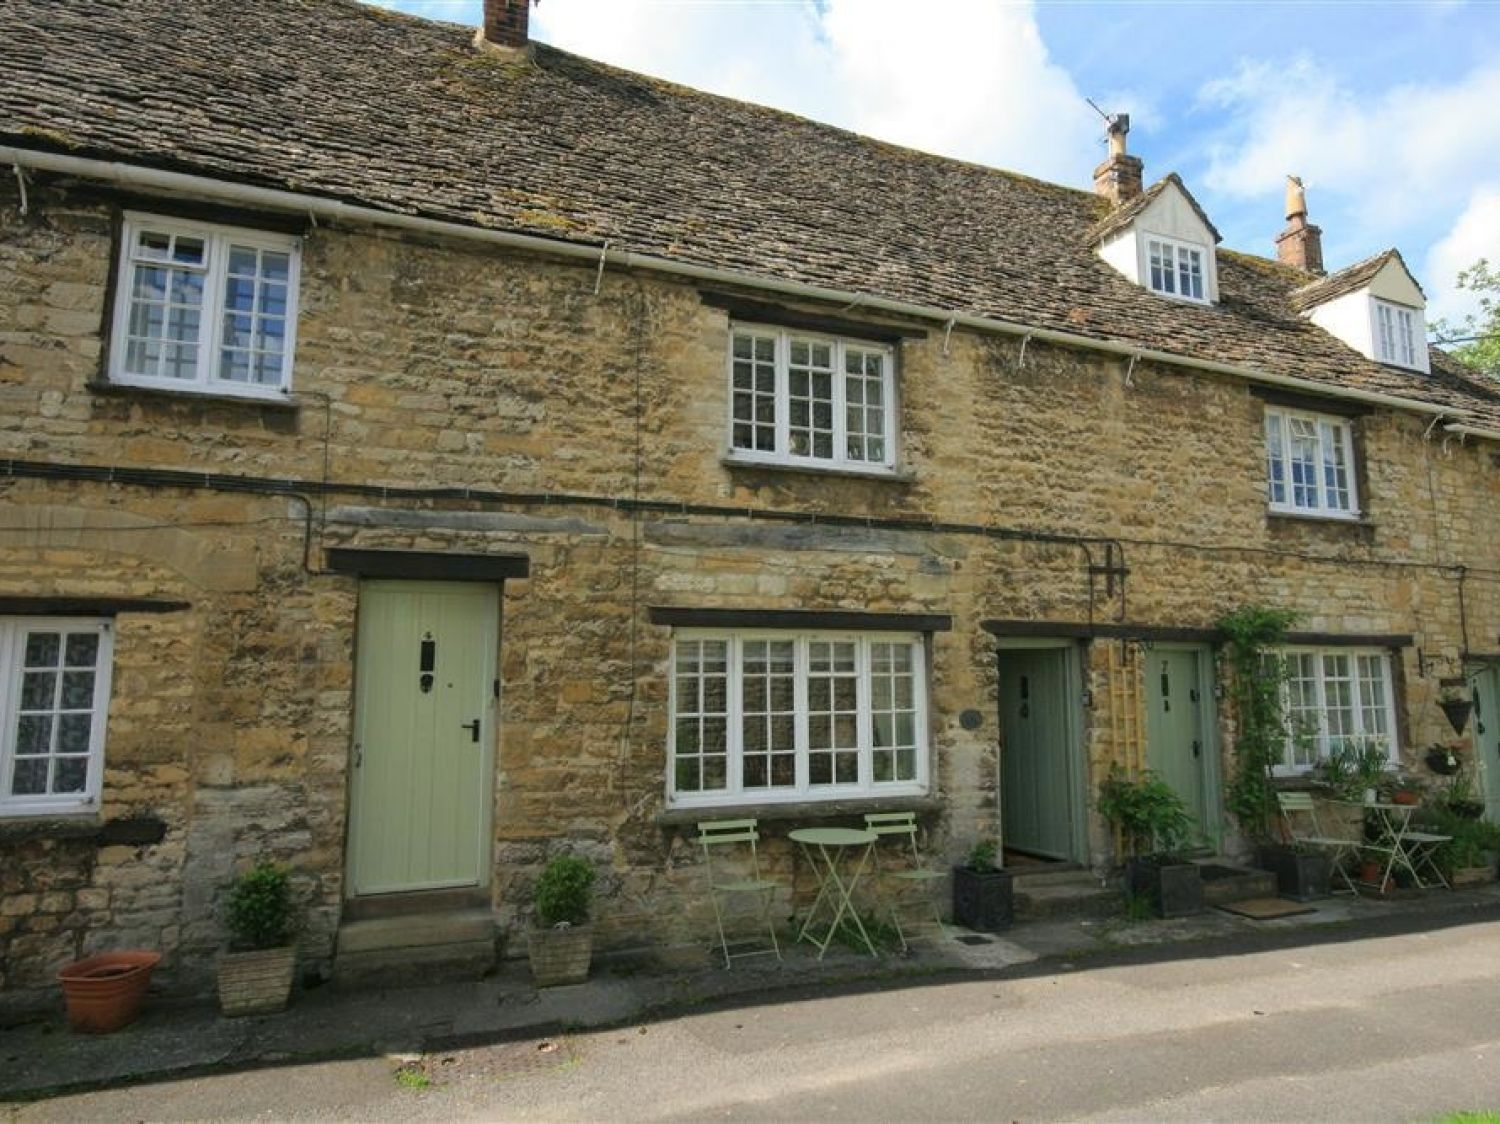 Cottage in Burford, Oxfordshire